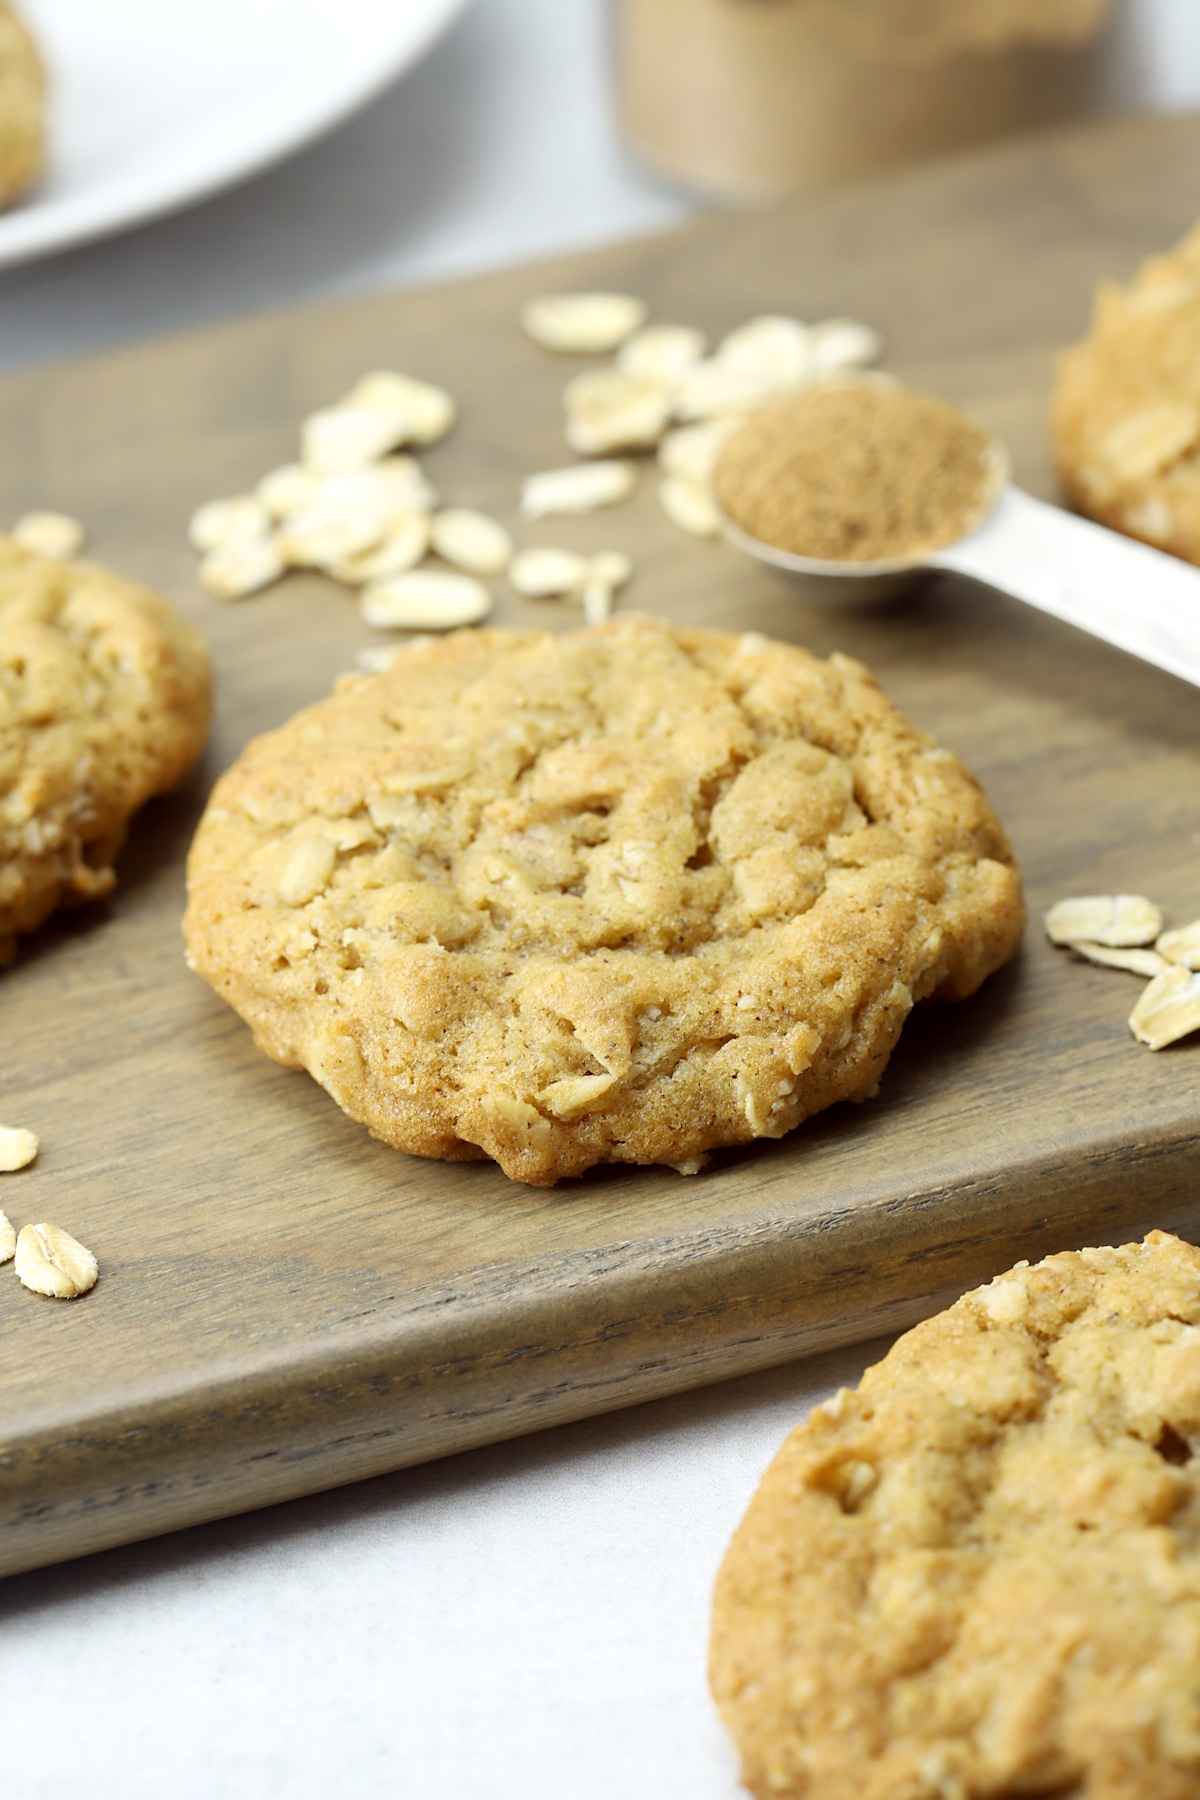 An oatmeal cookie on a wooden cutting board, with oats and chai spice.